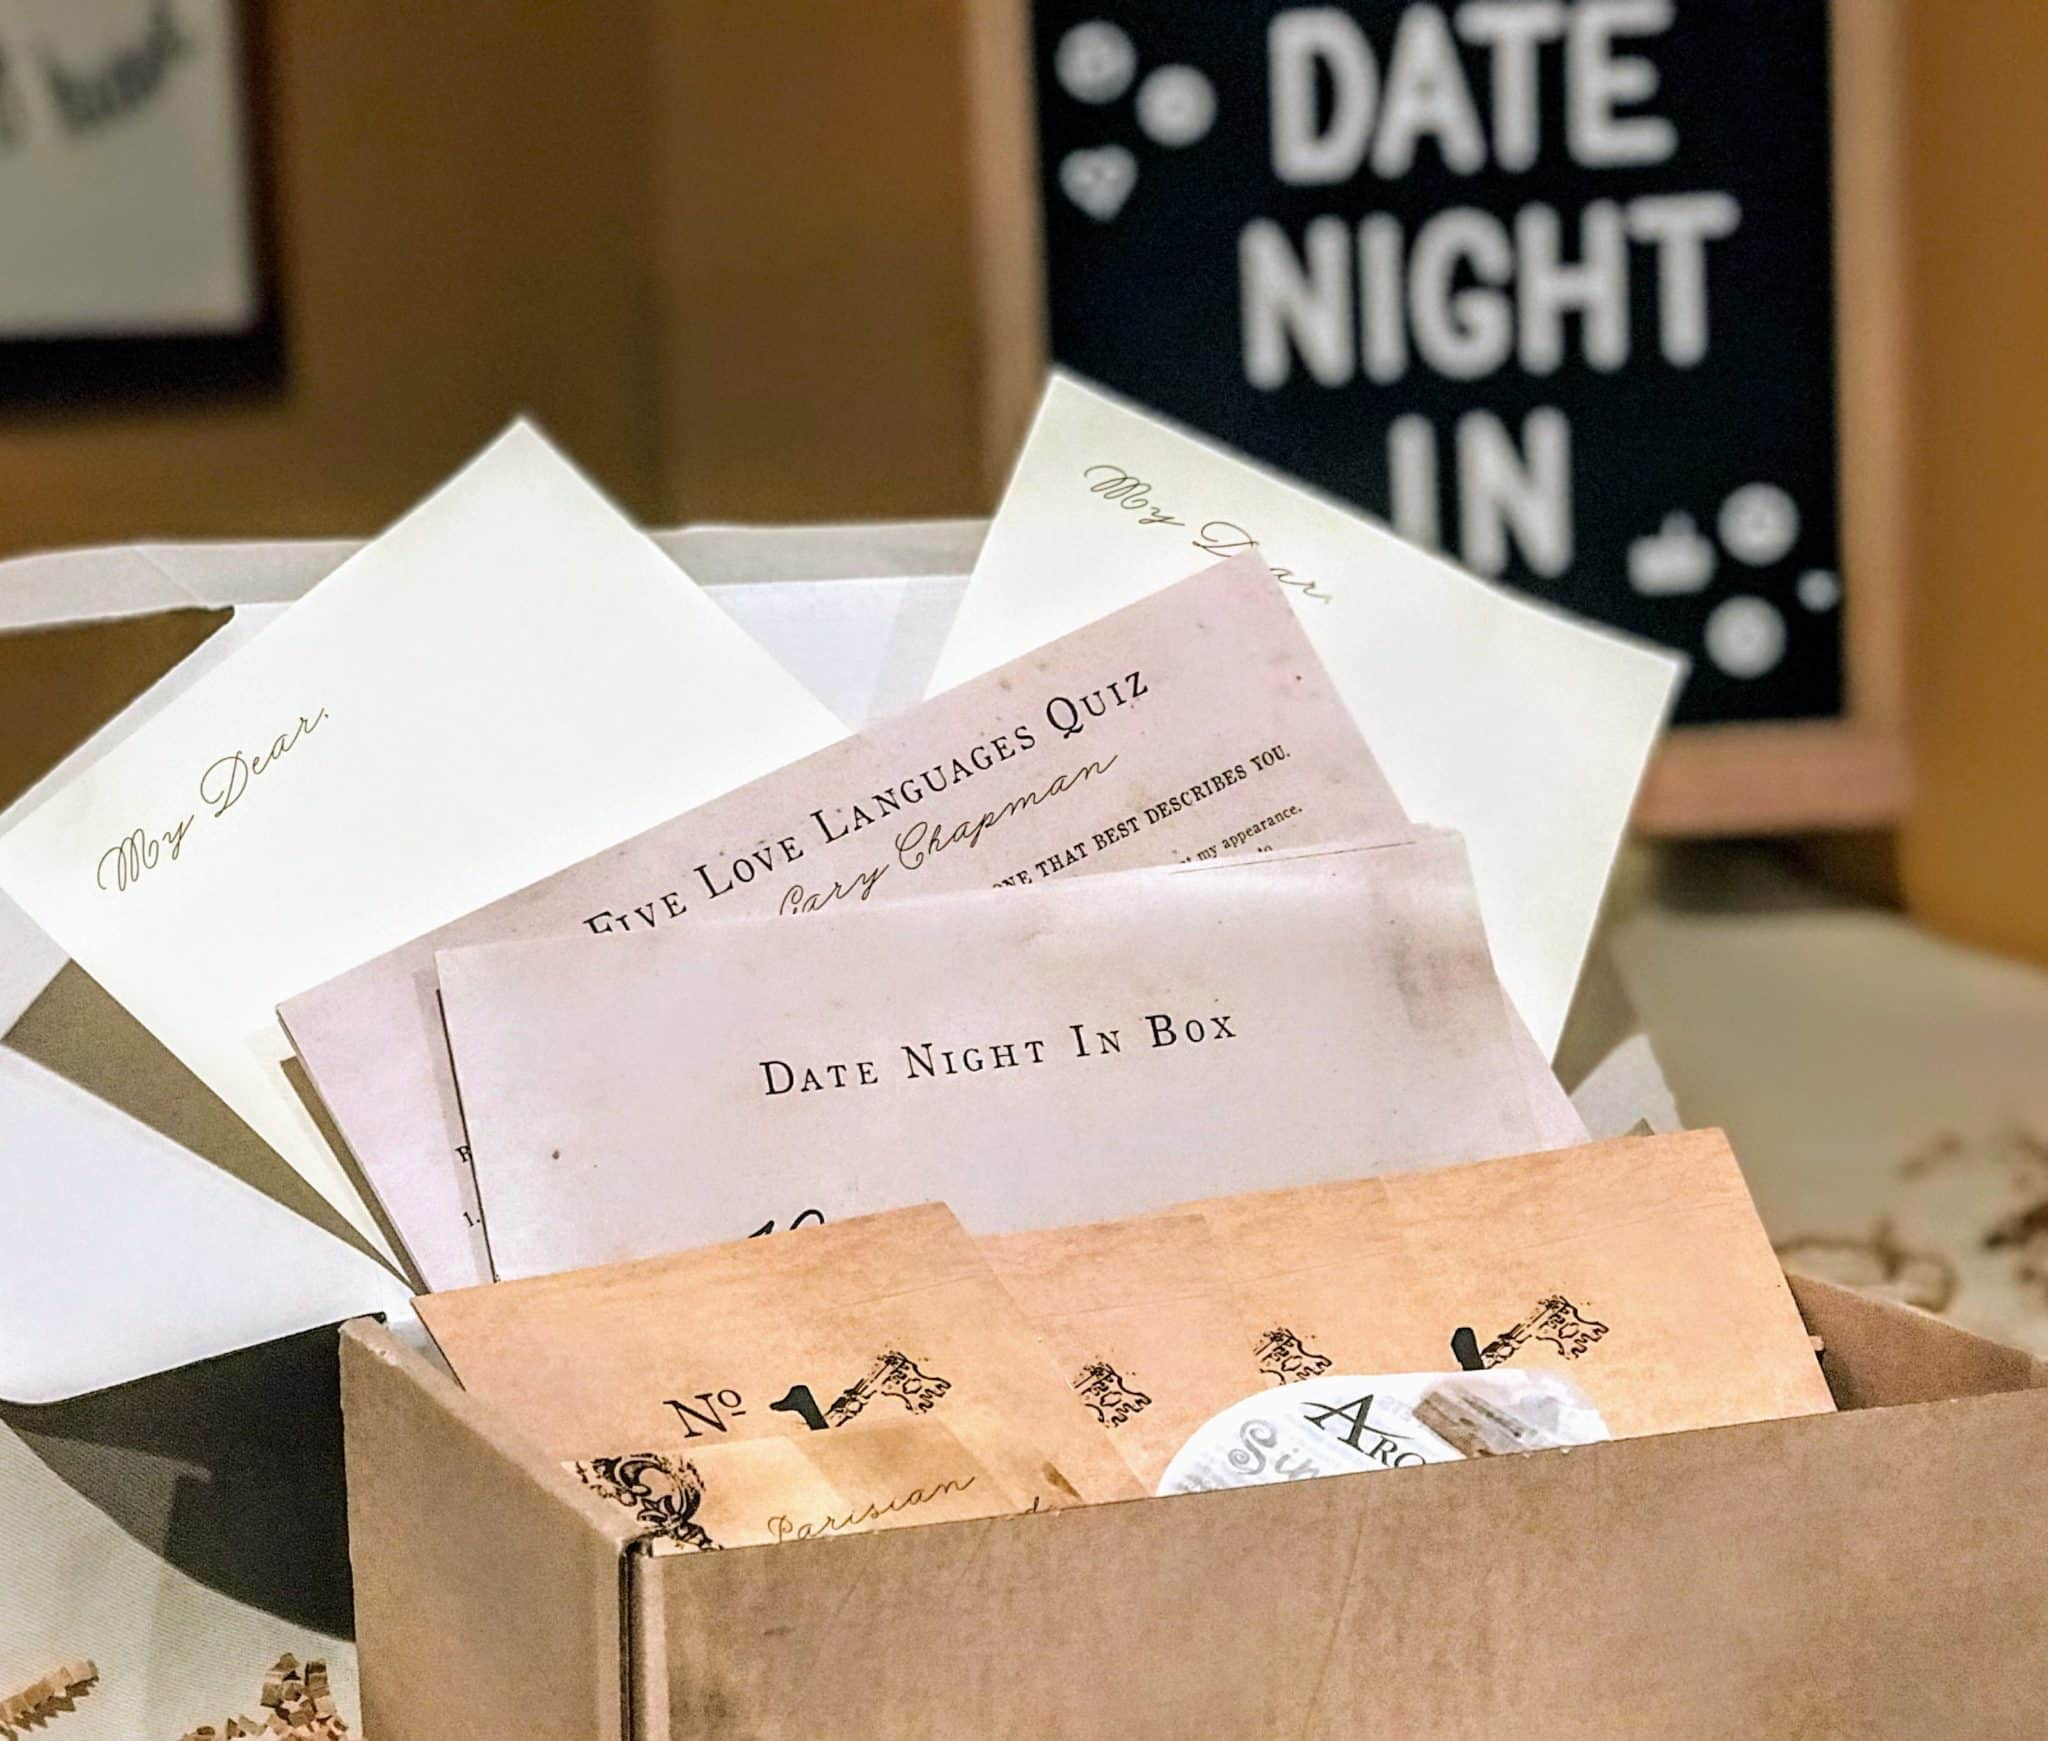 Date night In Unboxed - Everything that's included in the Date Night In Key to your heart box is pictured here